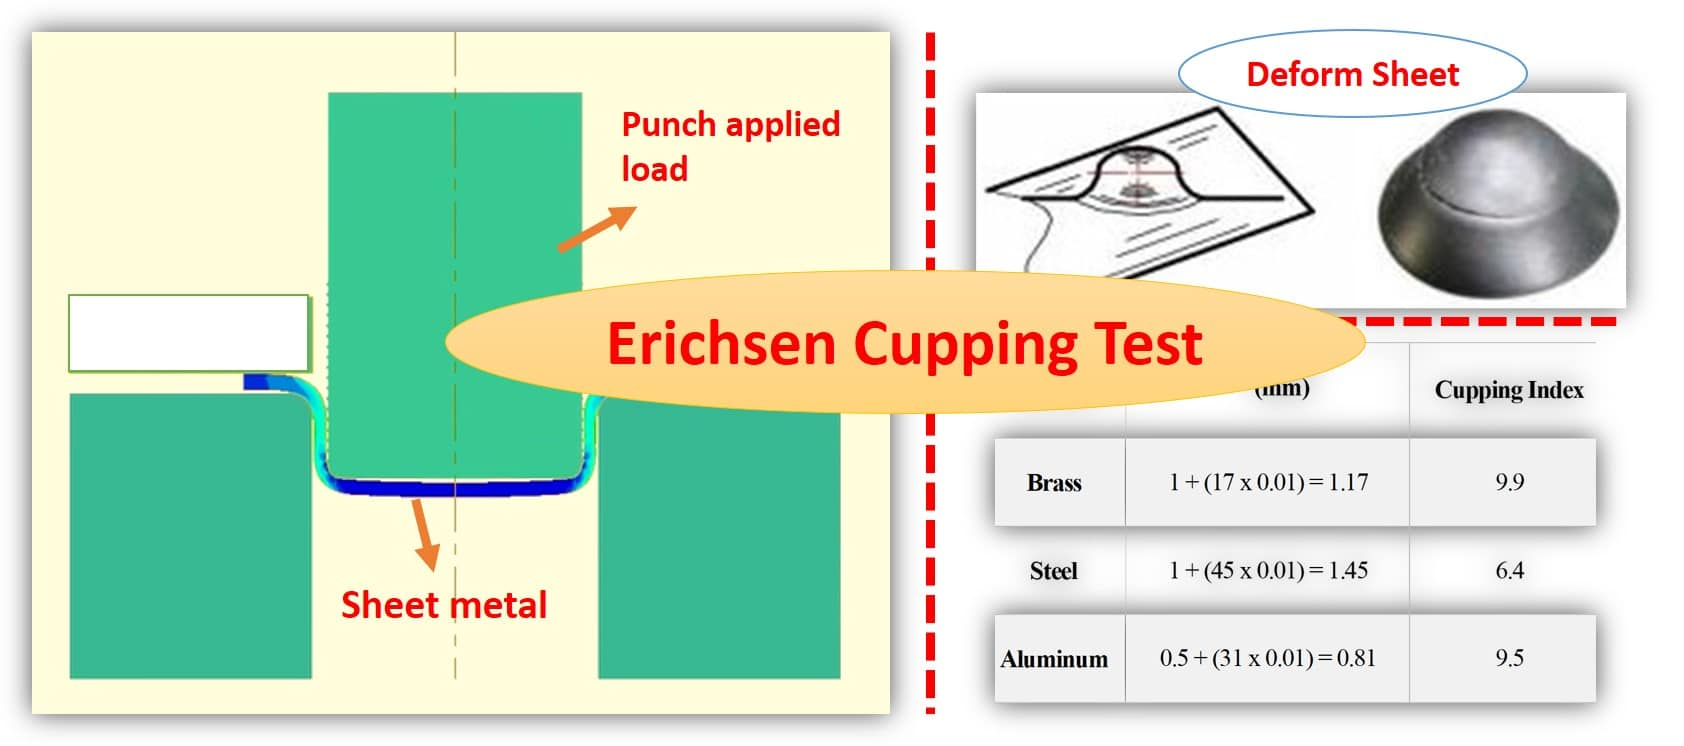 Erichsen cupping test